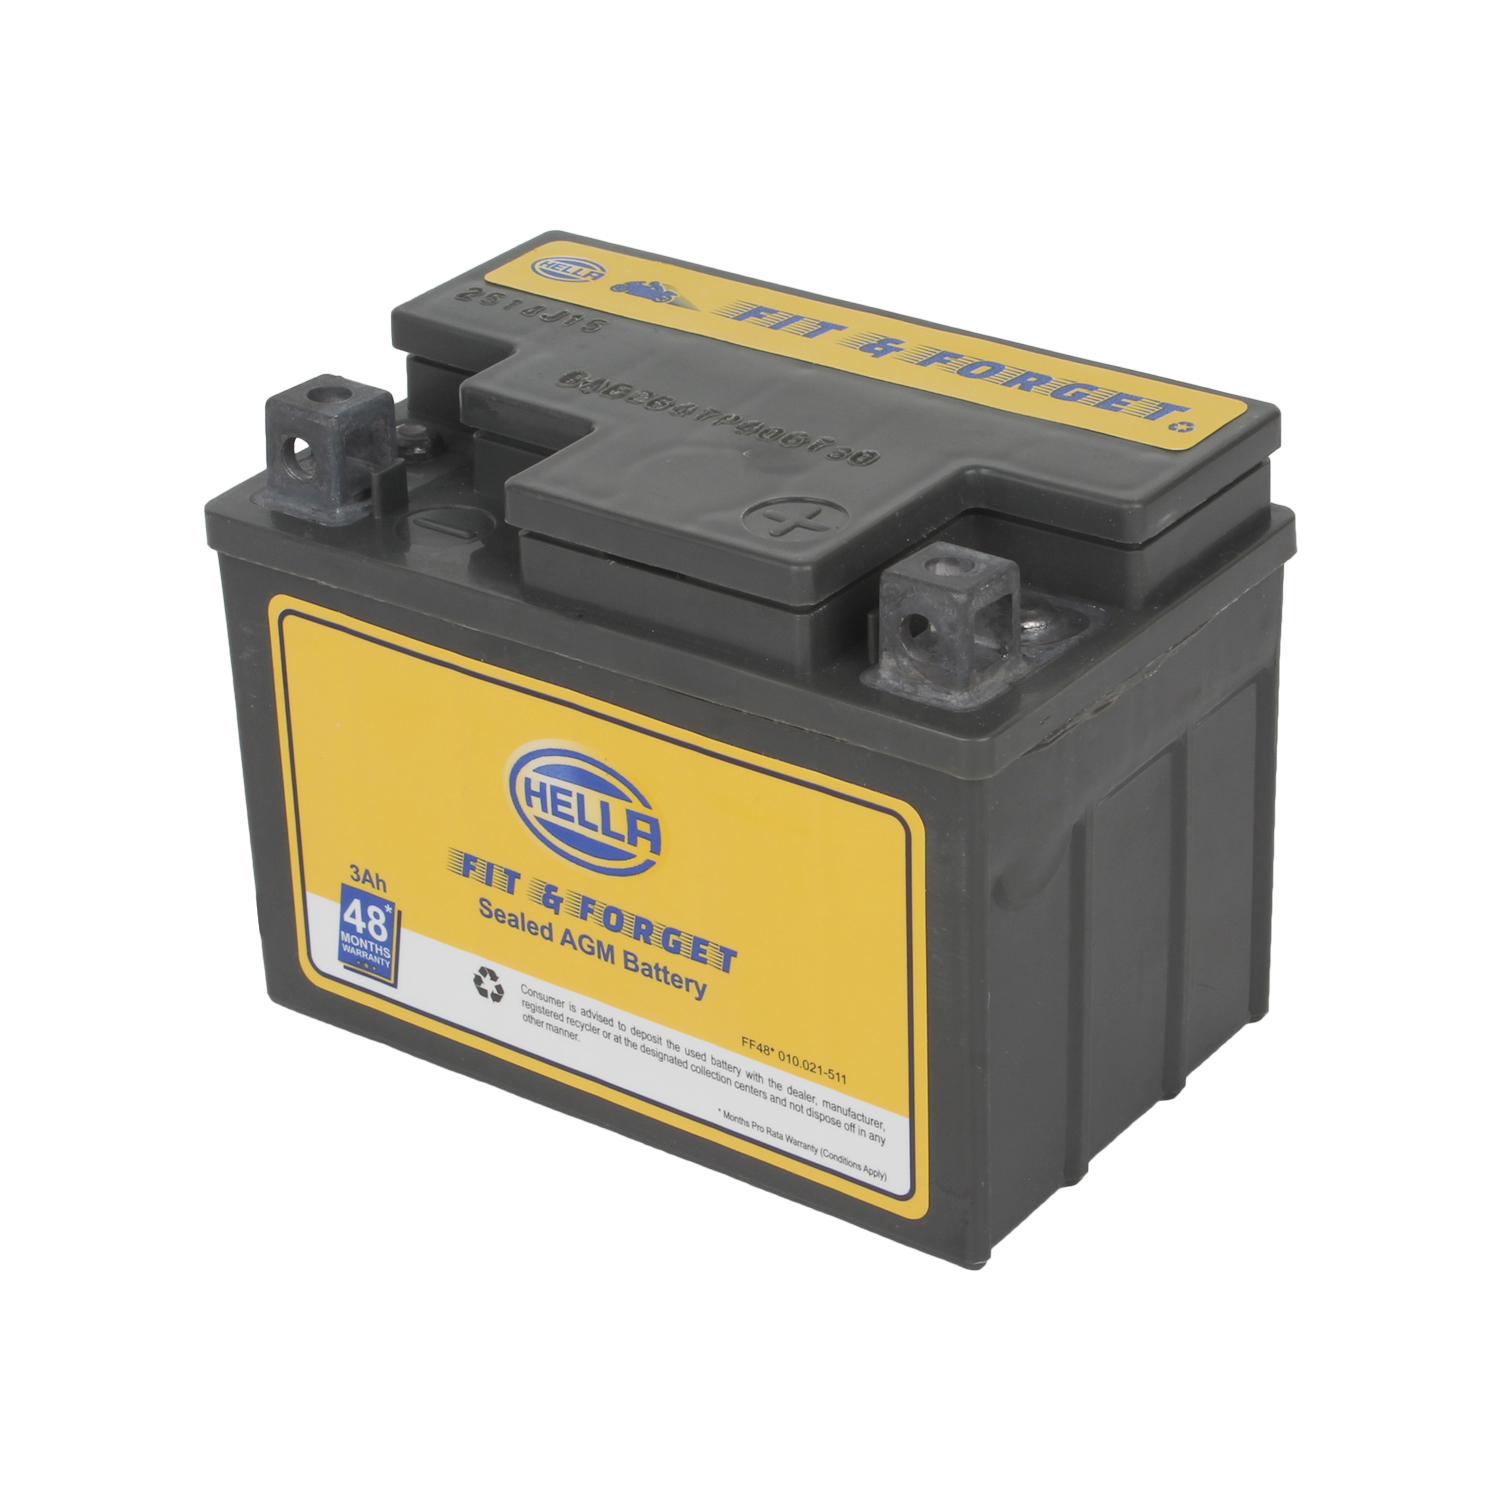 HELLA 010021511 Battery Fit N Forget 48* 3 AH